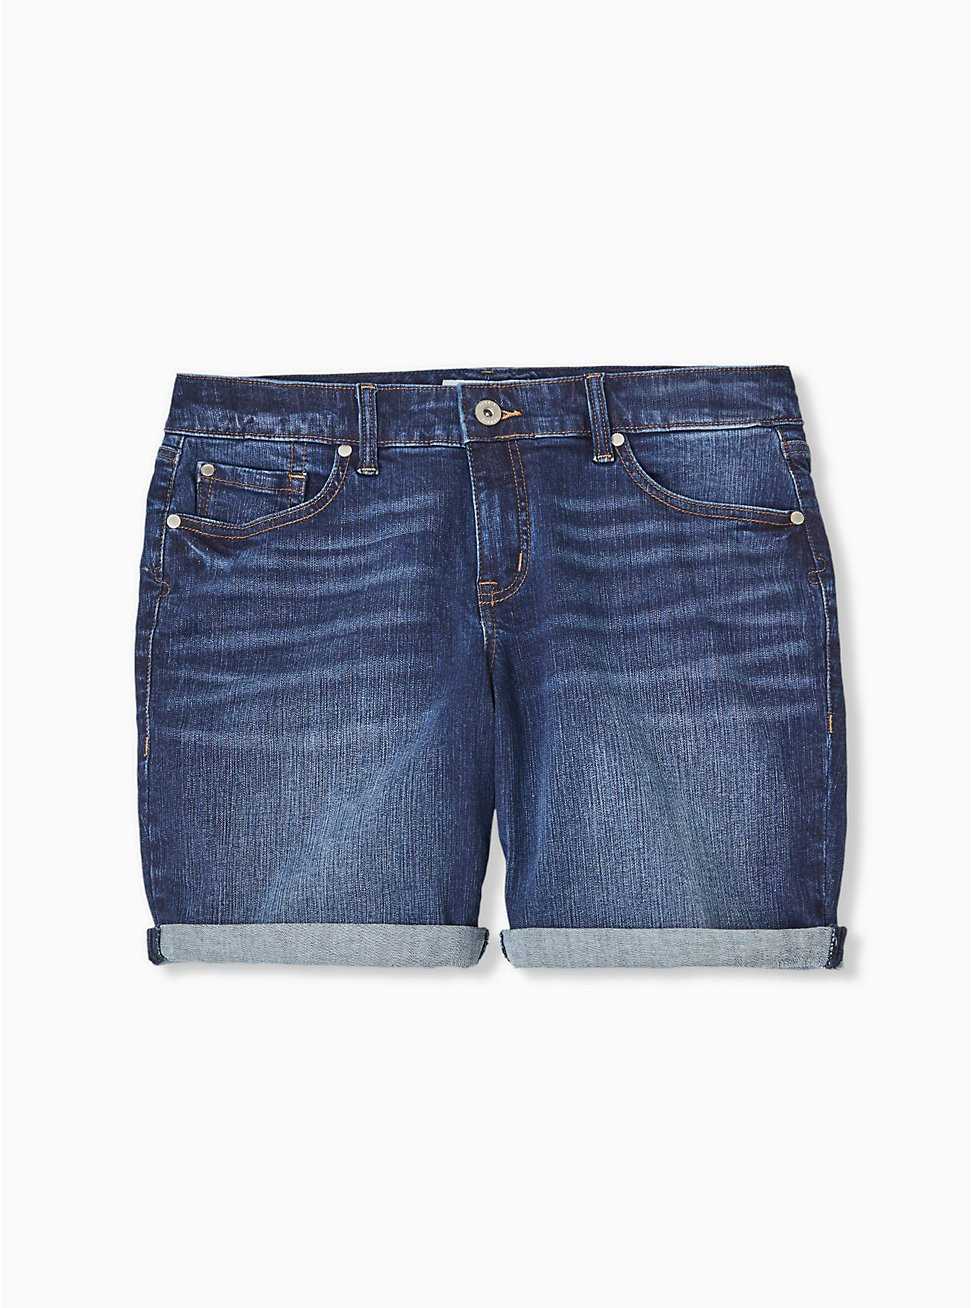 Mid Rise Bermuda Short - Vintage Stretch Medium Wash, KEEP IT 100, hi-res